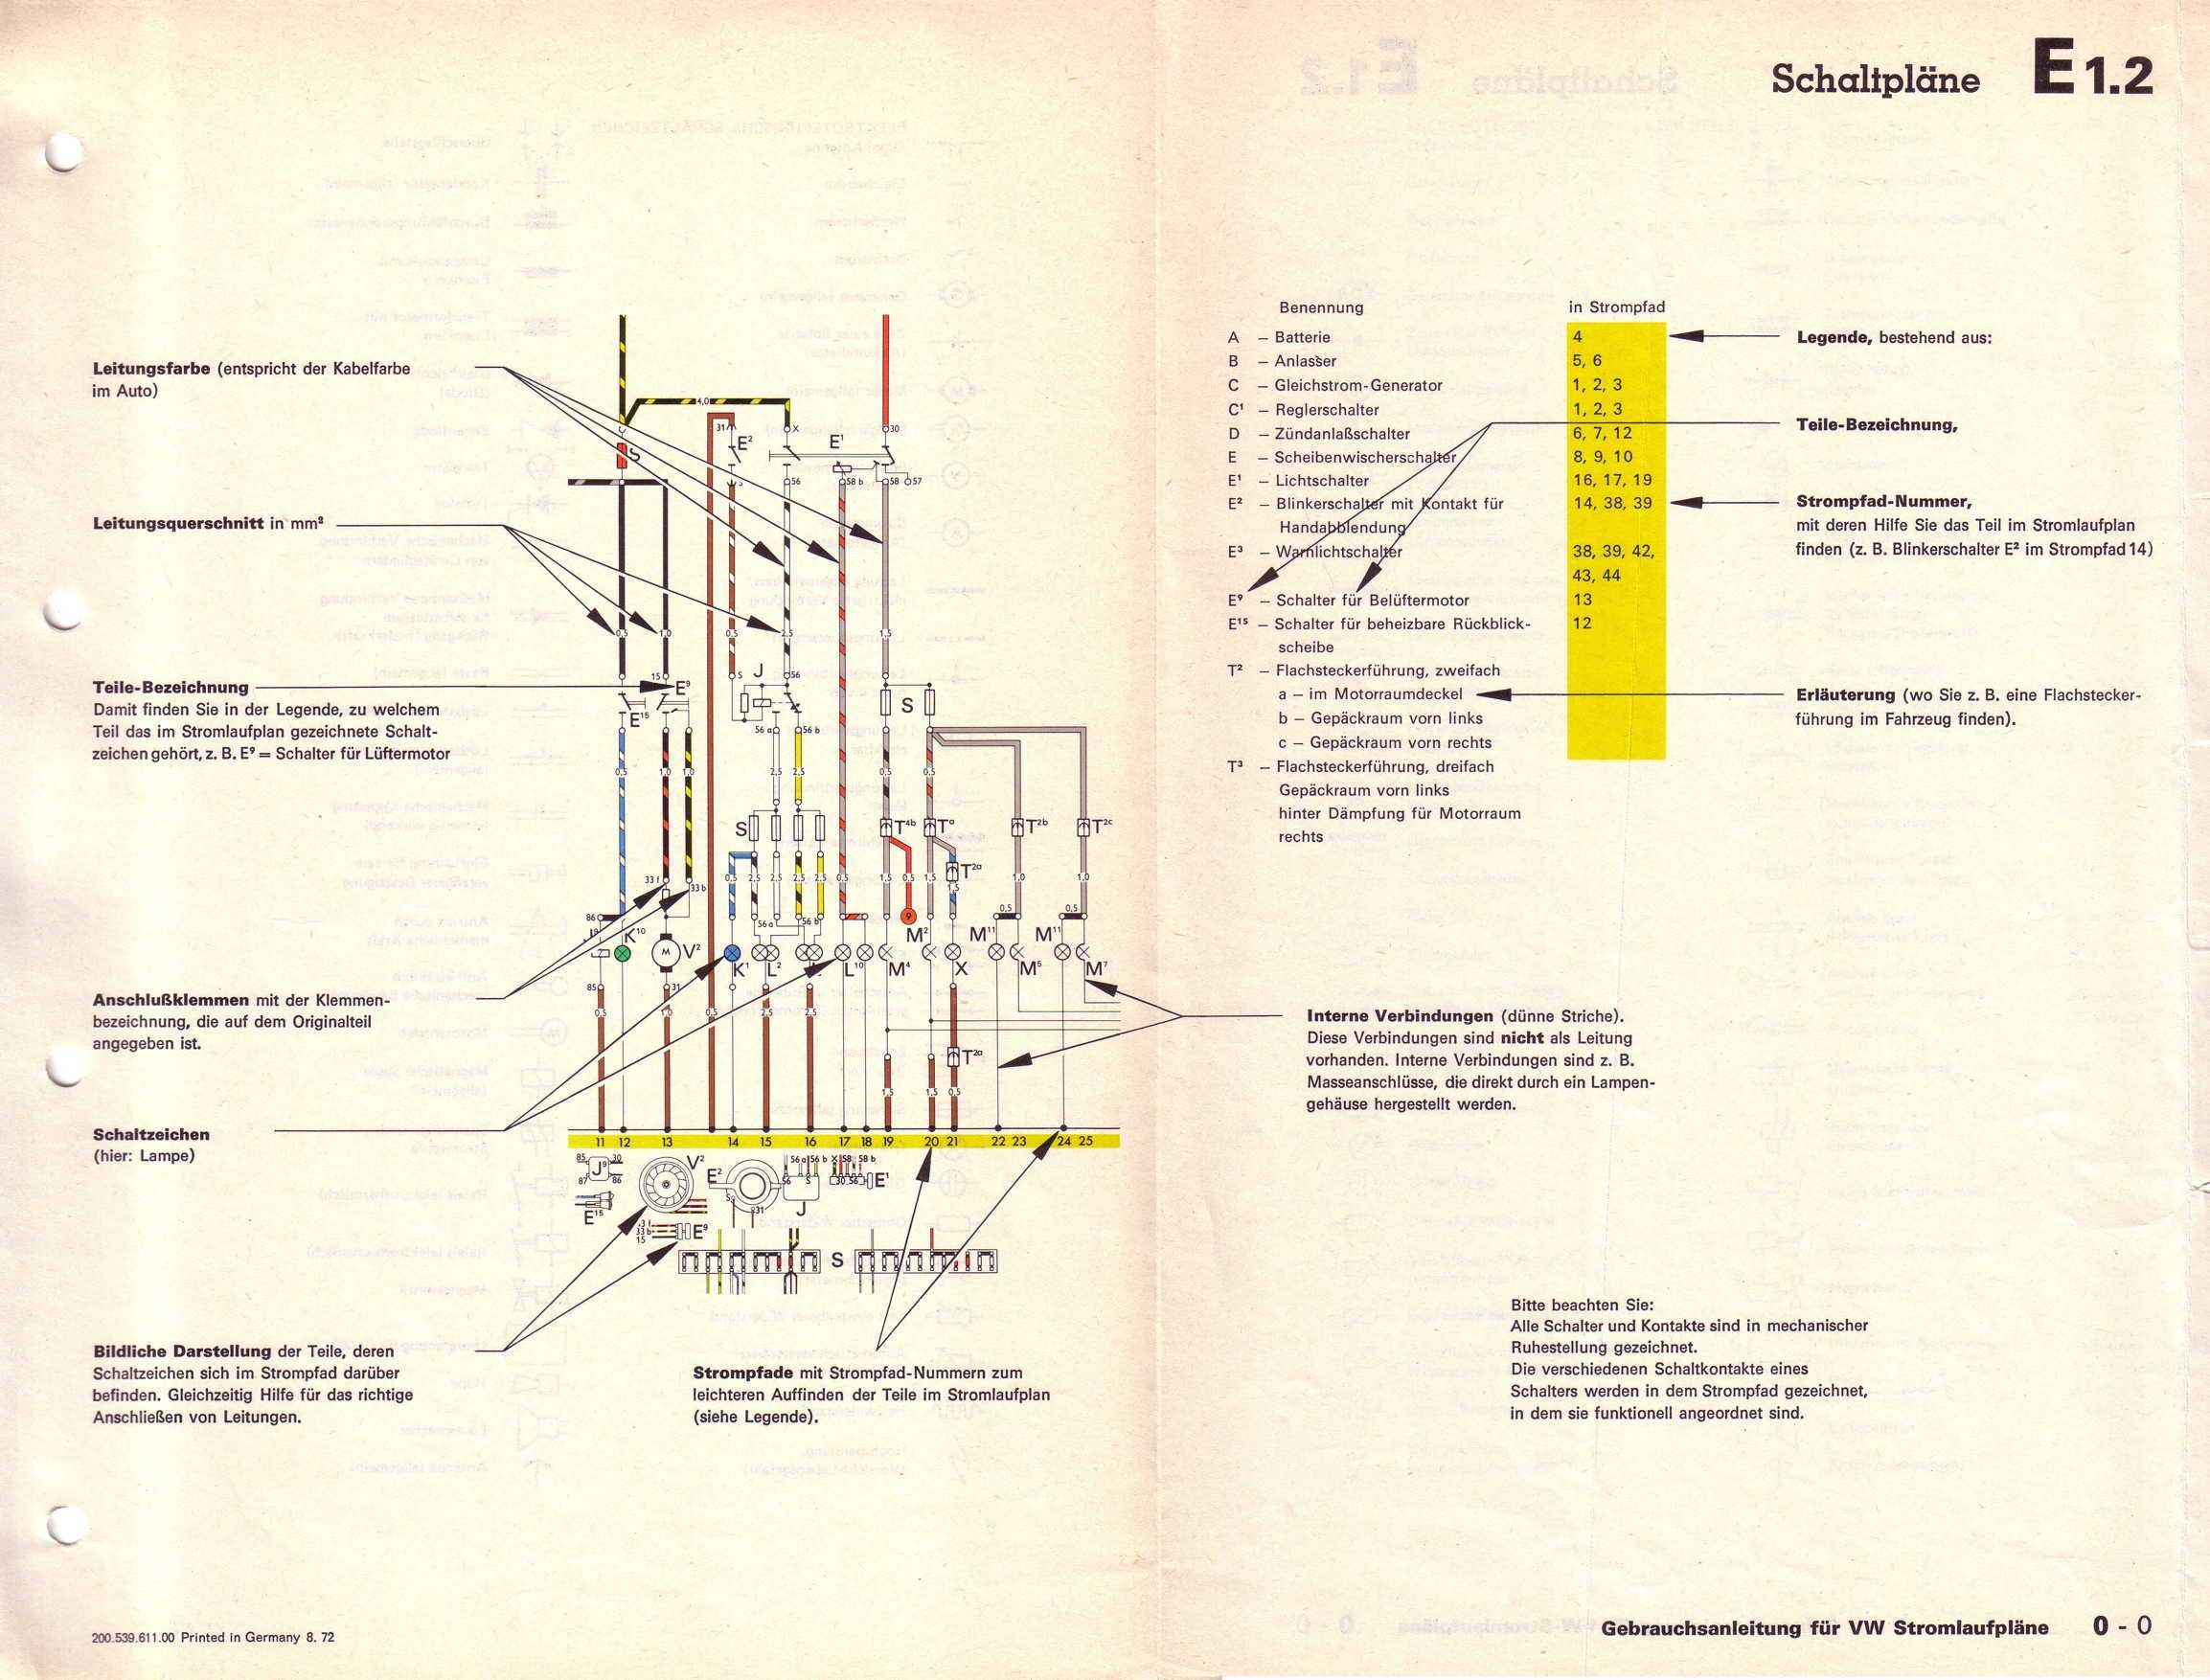 Wiring Diagram for Bad Boy Buggy 5042b Bad Boy Buggies Wiring Diagram Of Wiring Diagram for Bad Boy Buggy